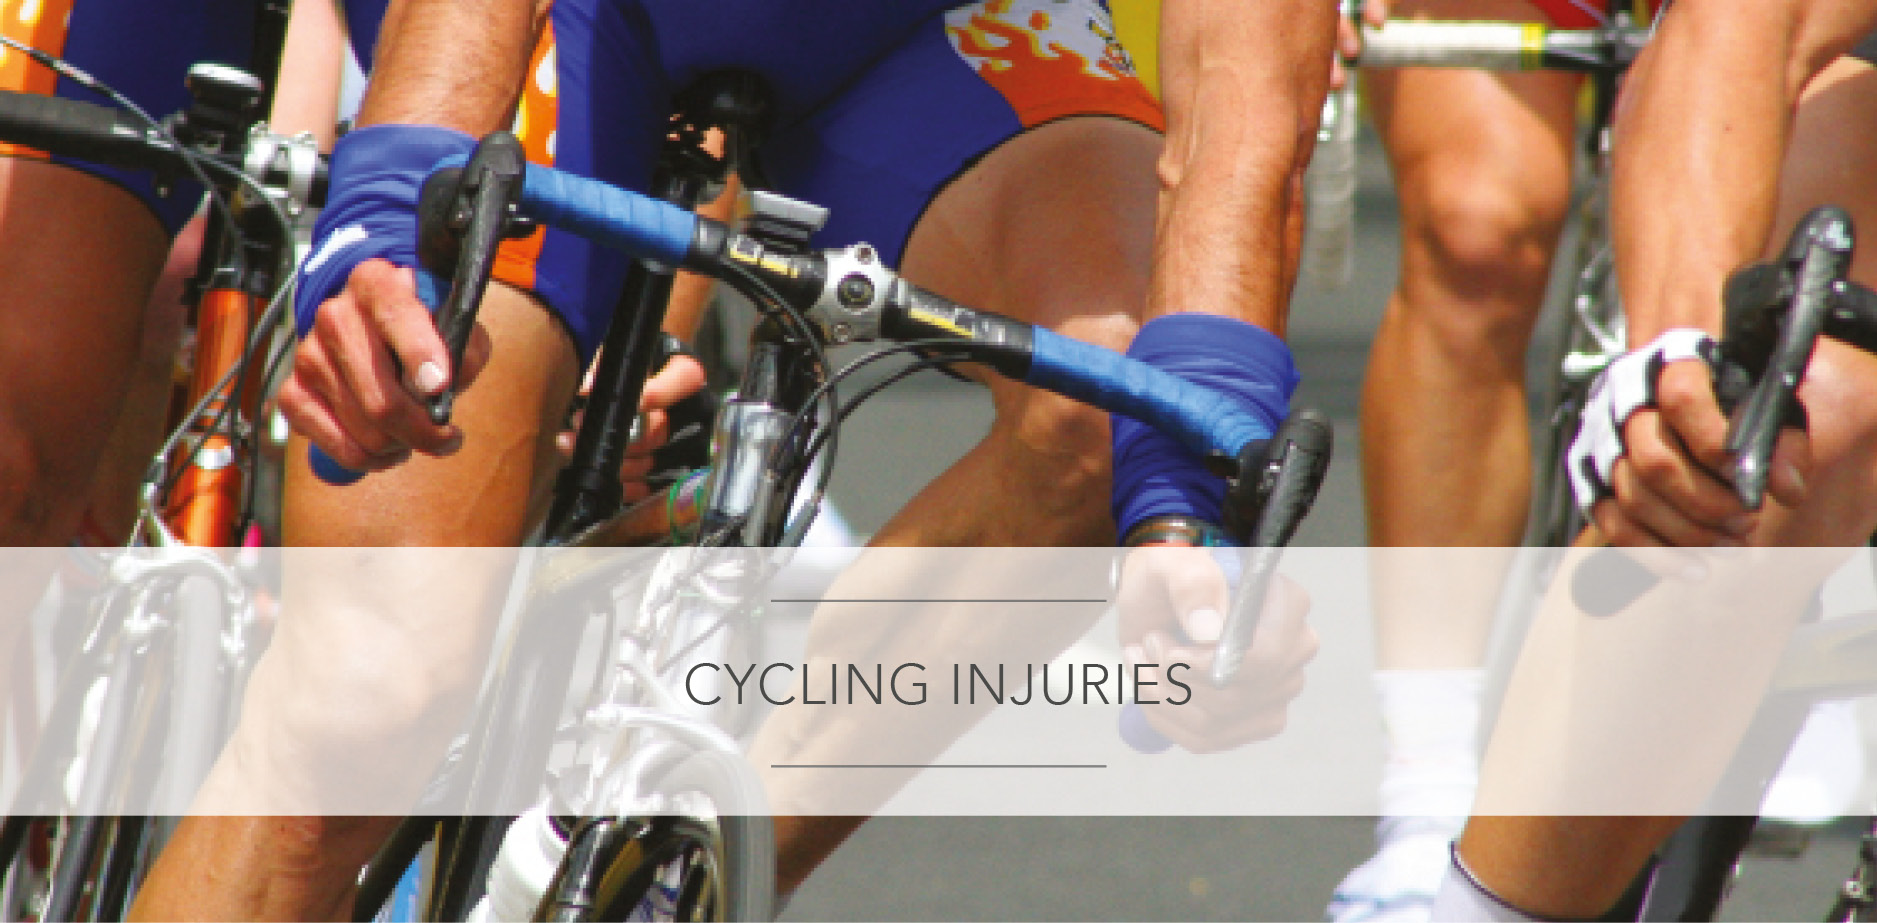 Cycling-related Injuries at The Putney Clinic of Physical Therapy